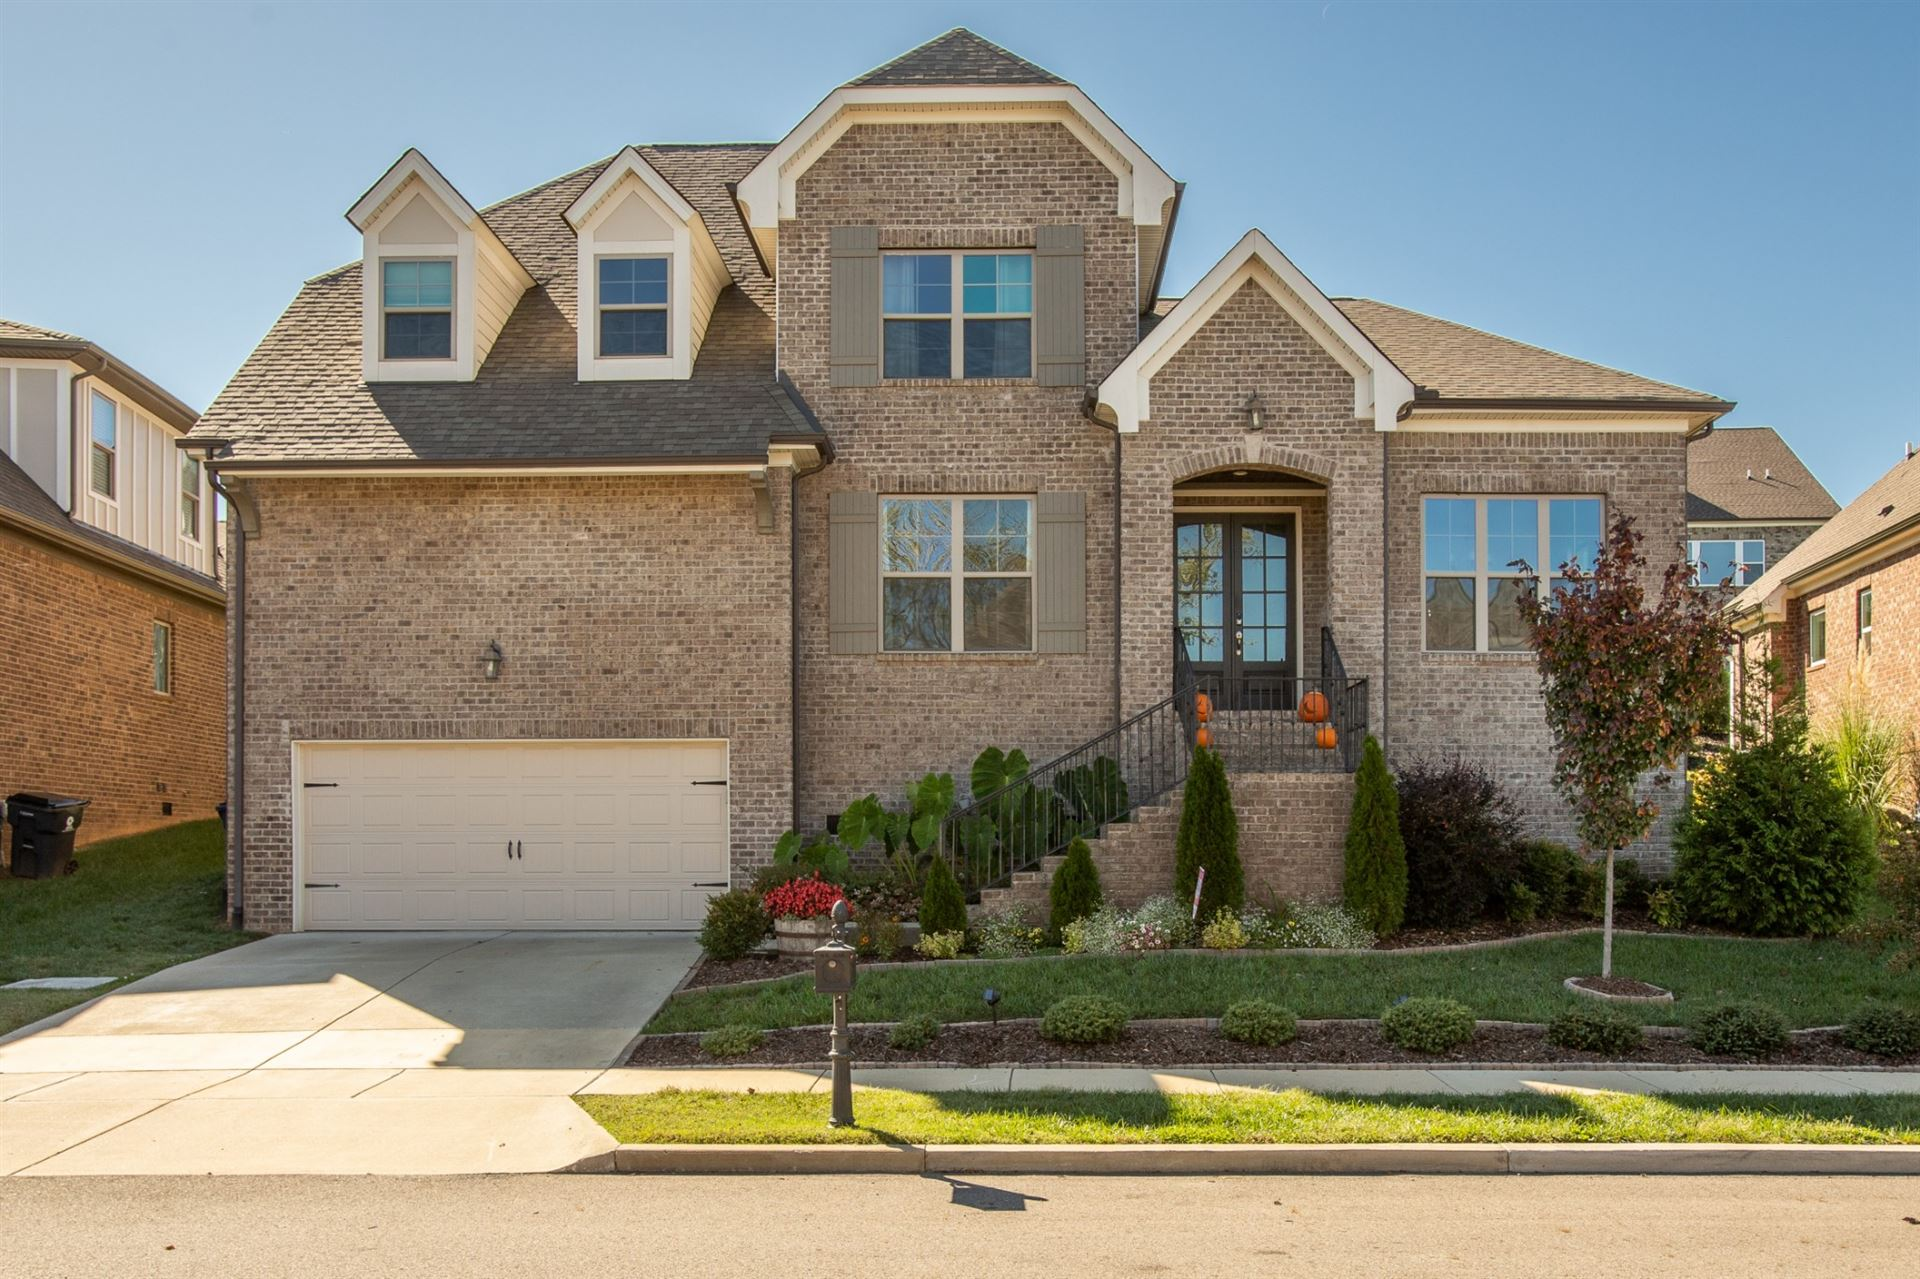 2653 Paddock Park Dr, Thompsons Station, TN 37179 - MLS#: 2198346